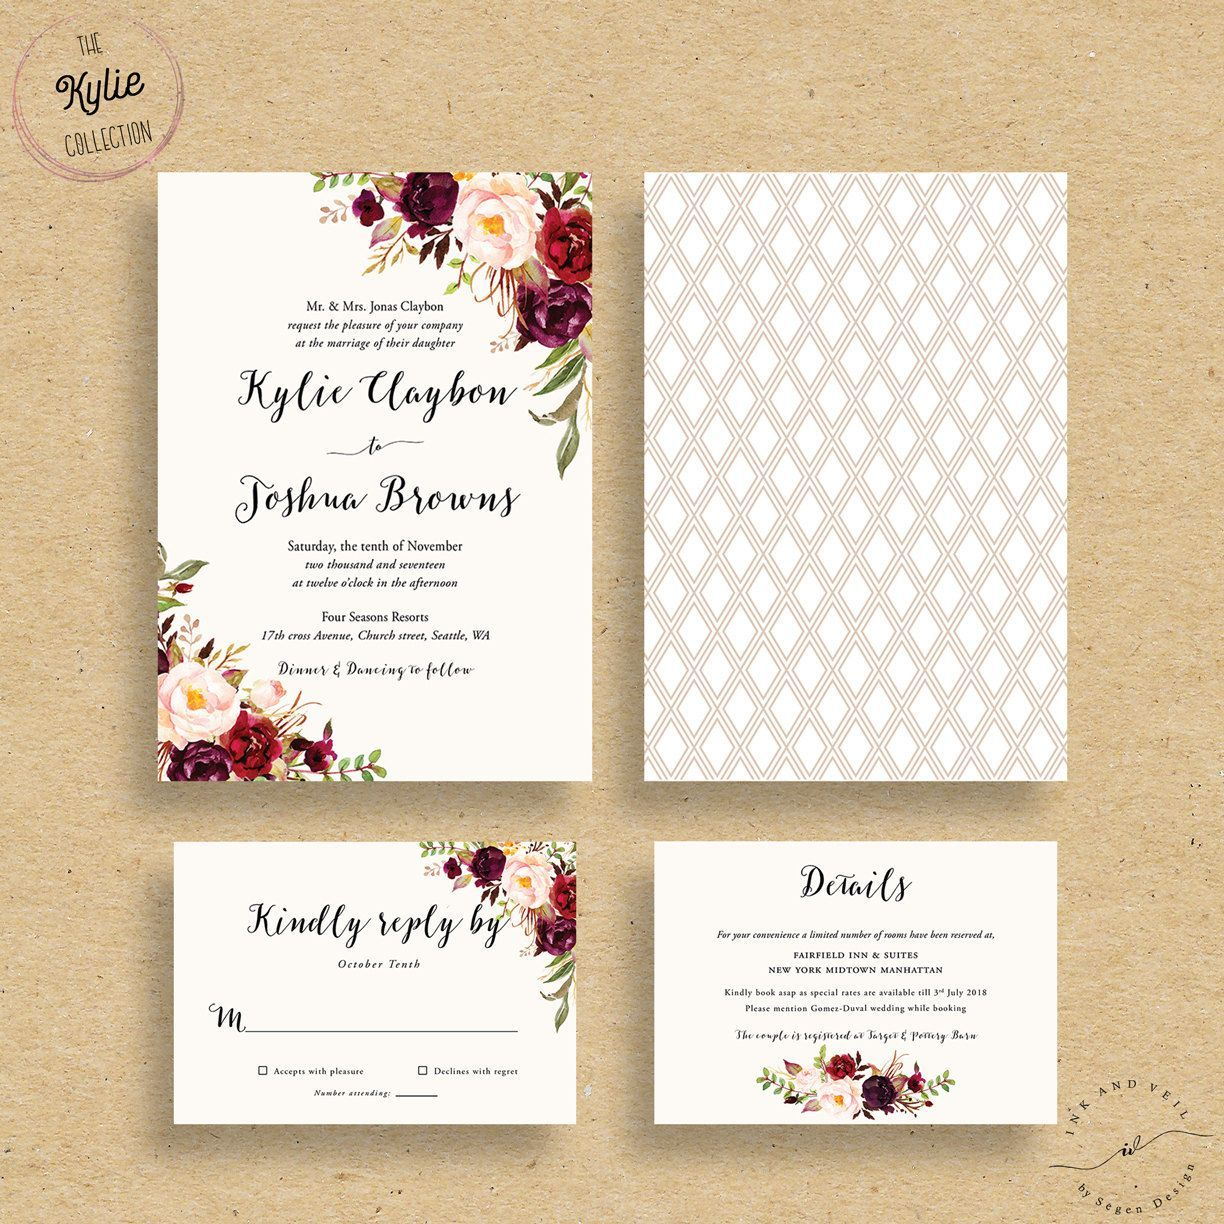 Marsala Wedding Invitations, Fall Floral Wedding Invites, Autumn ...